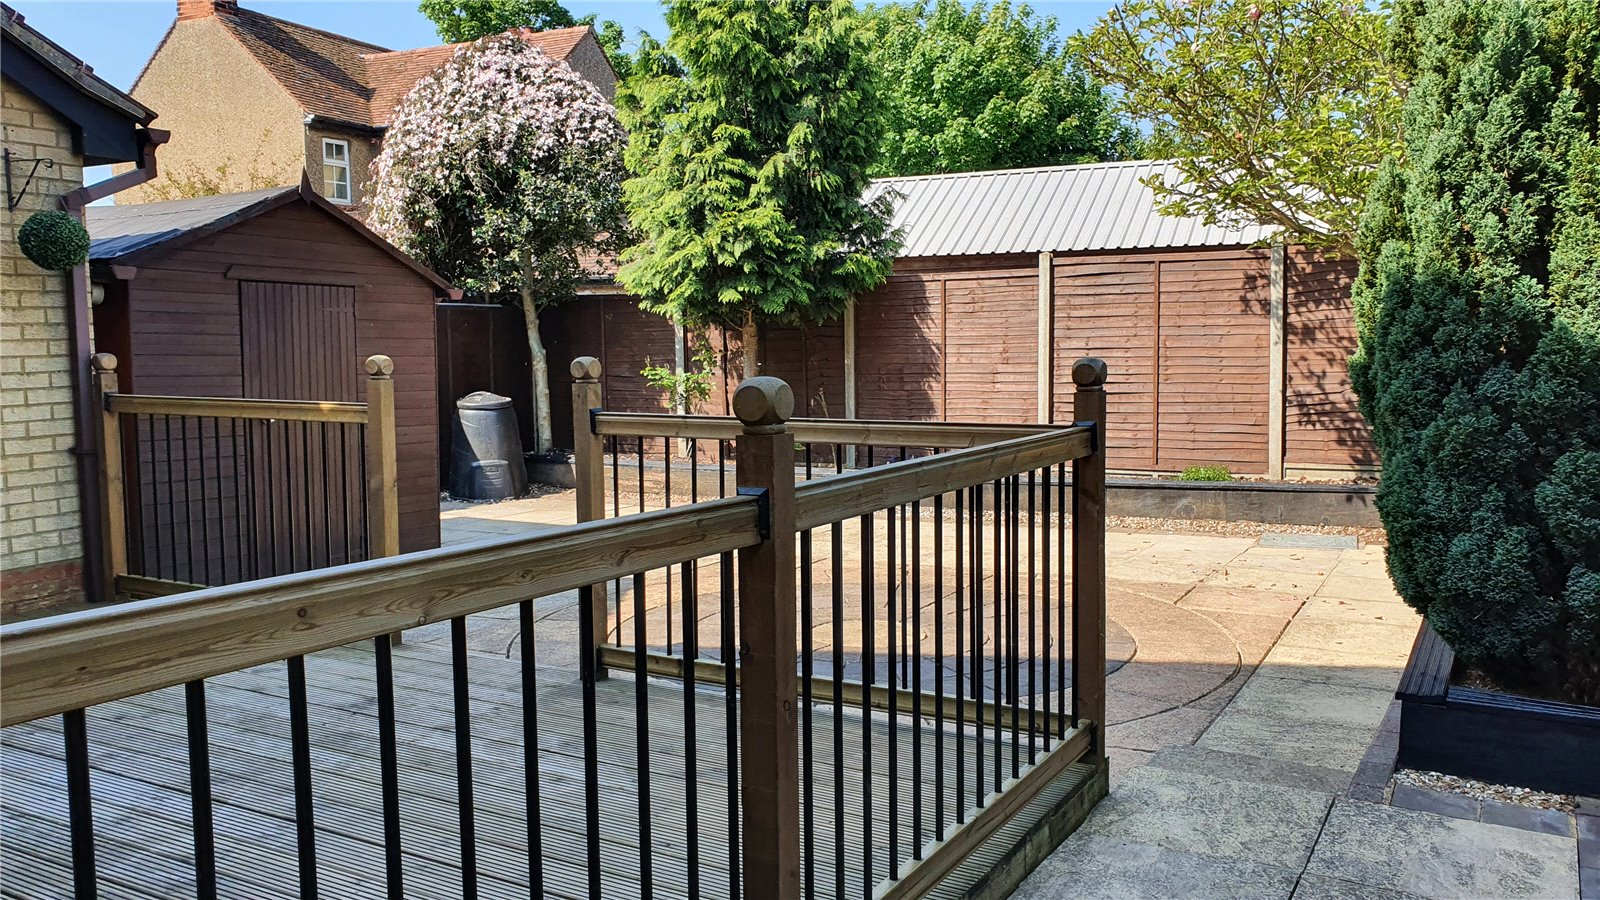 3 bed house for sale in Farm Close, Wyboston 8